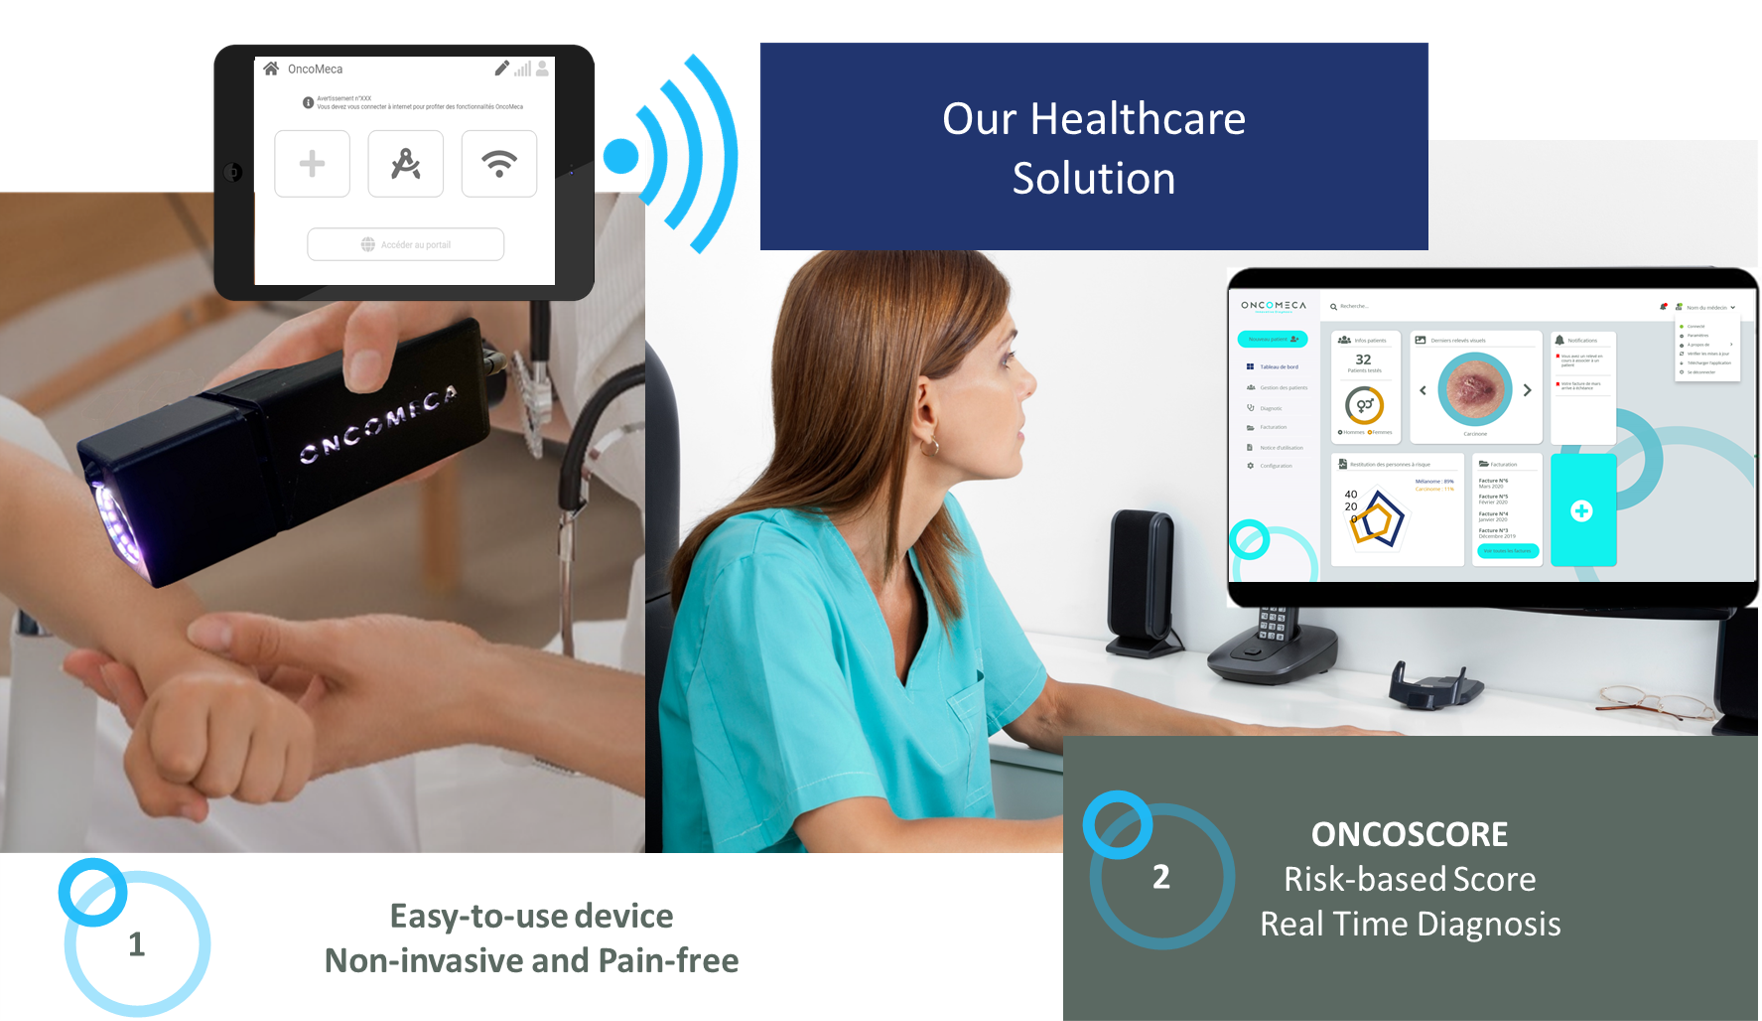 Our Healthcare Solution